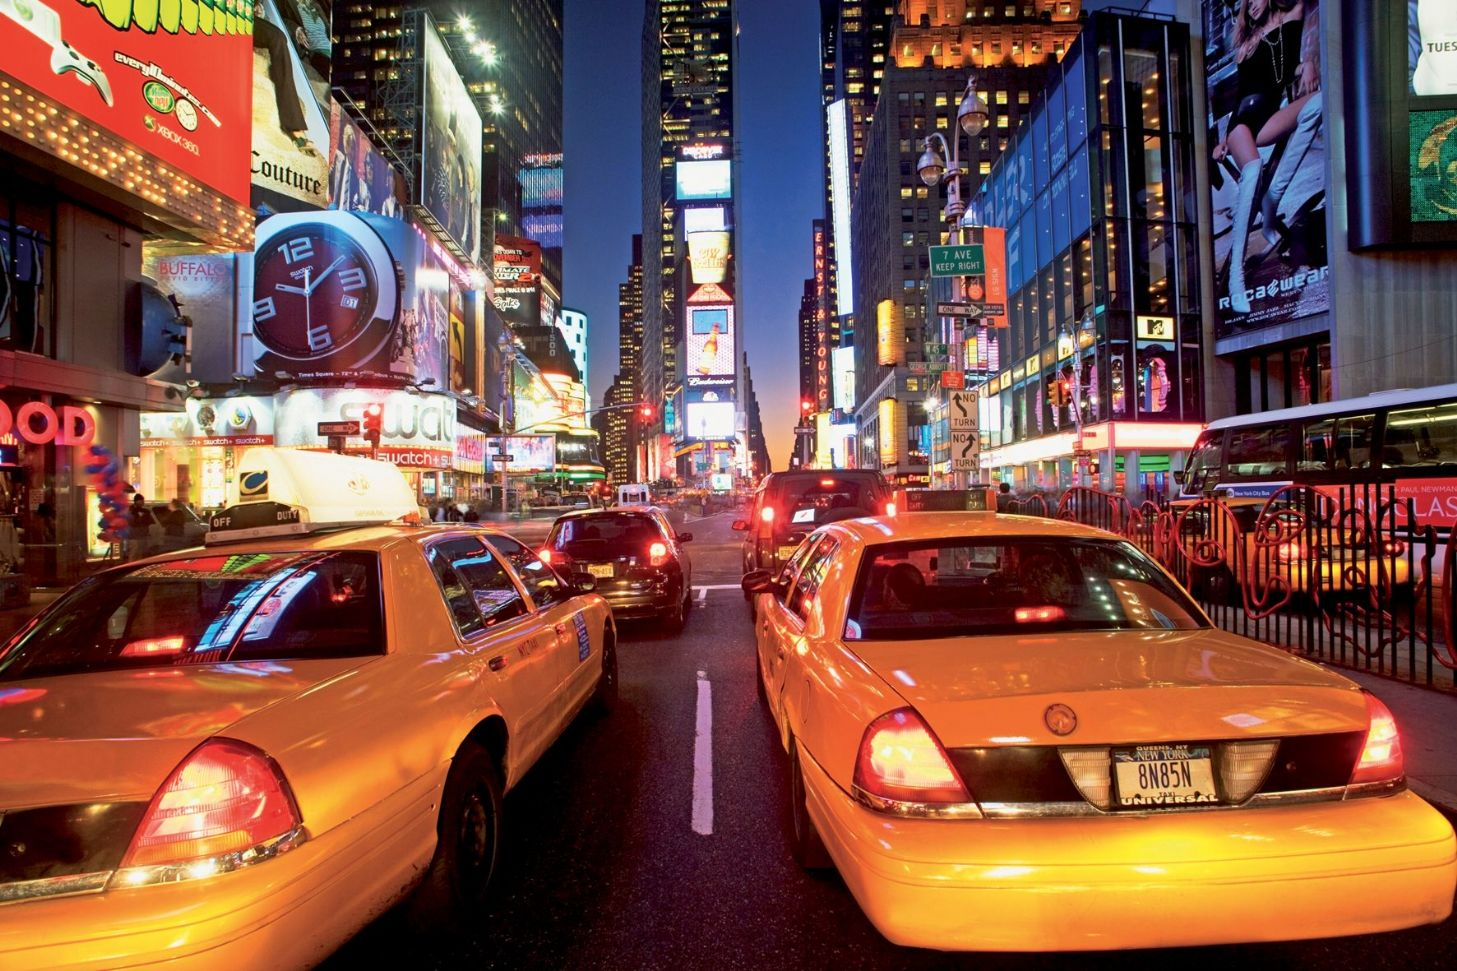 Captivating GIANT WALLPAPER WALL MURAL NEW YORK TIMES SQUARE YELLOW TAXI THEMED DESIGN Part 2